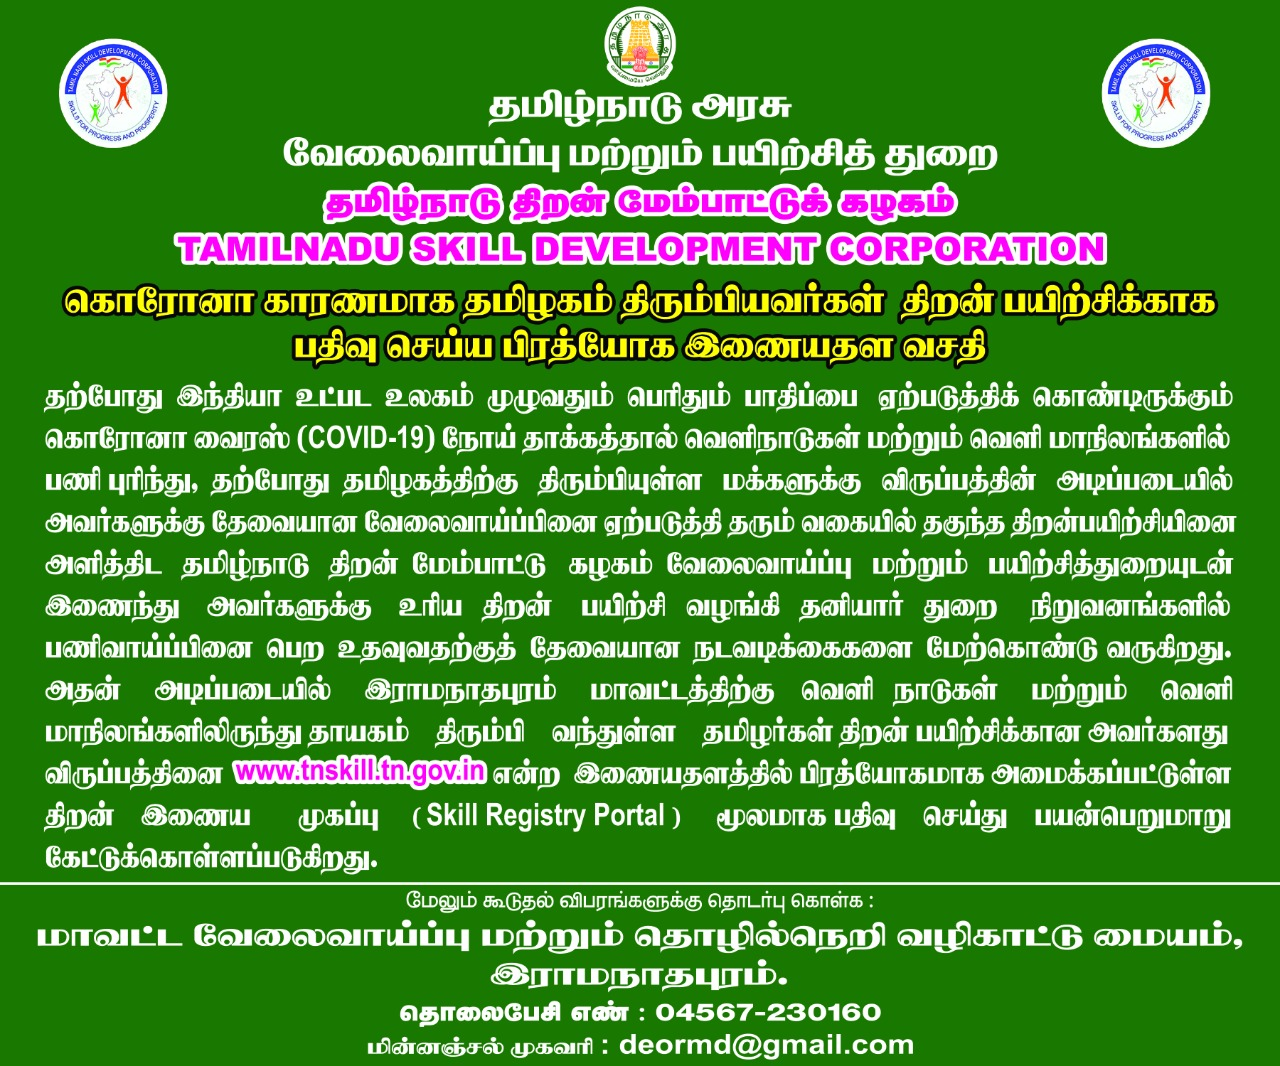 Ramanathapuram District Tamil Nadu Land Of Divinity India